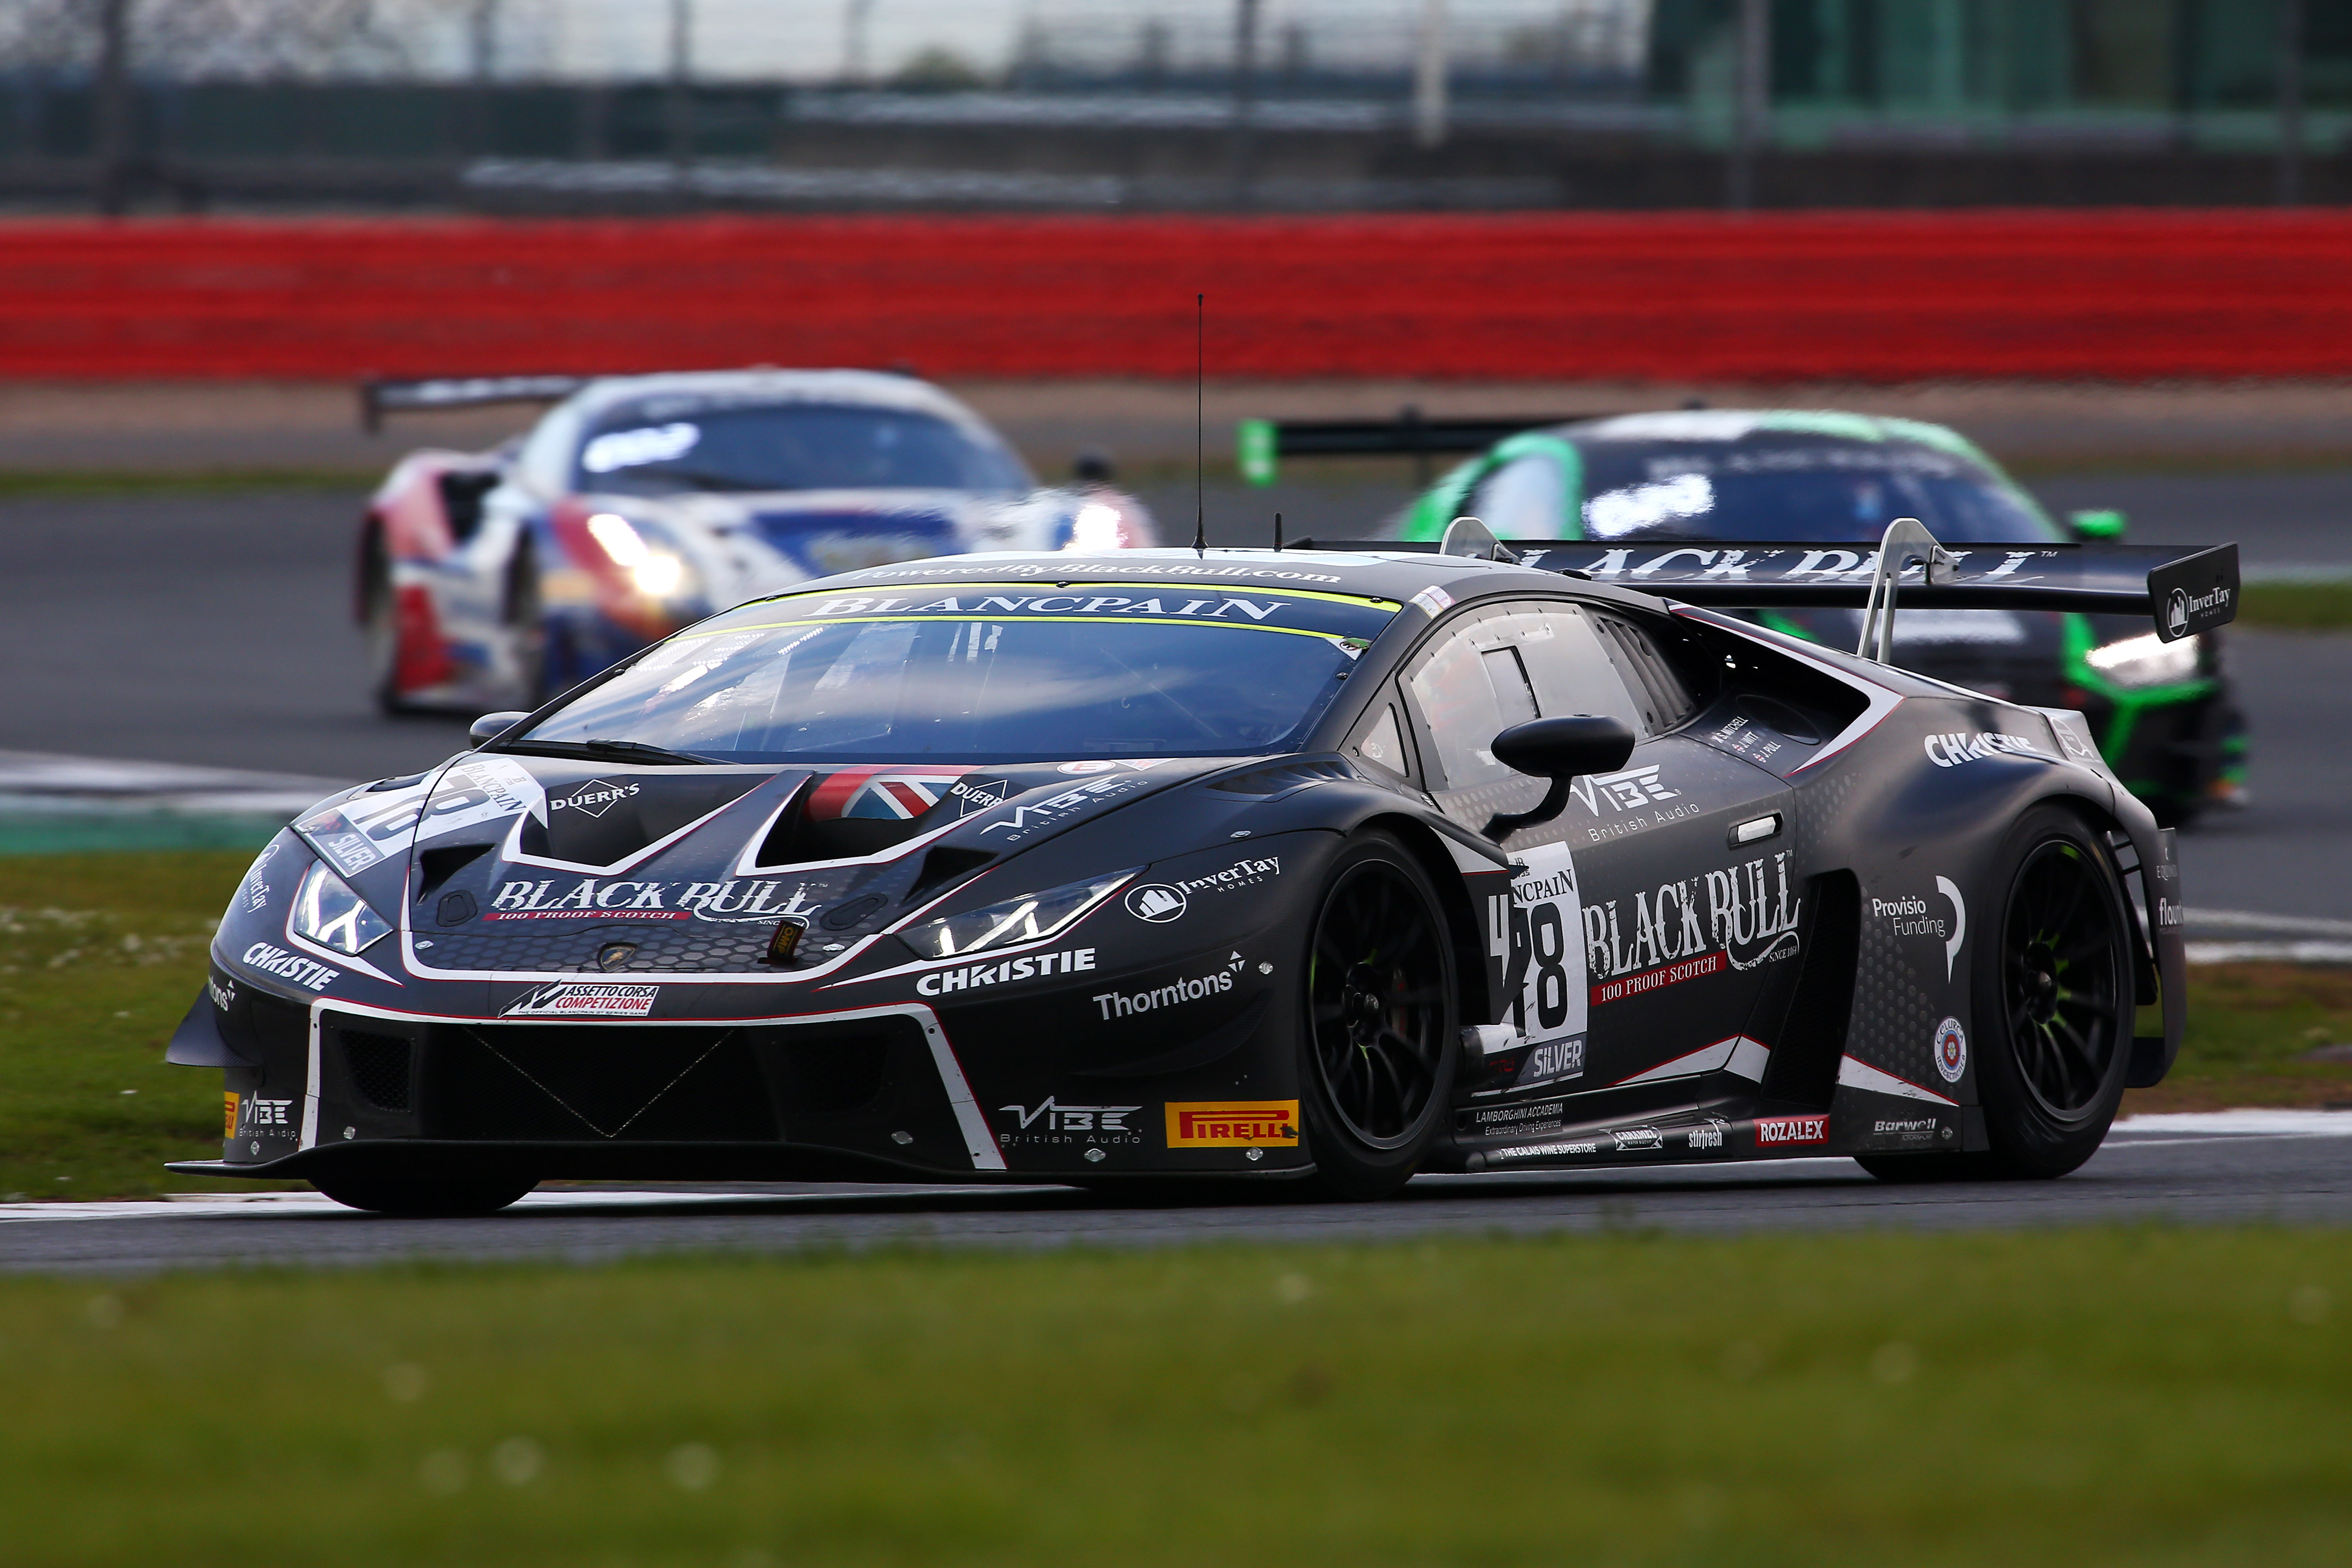 Sandy Mitchell in Blancpain GT action.